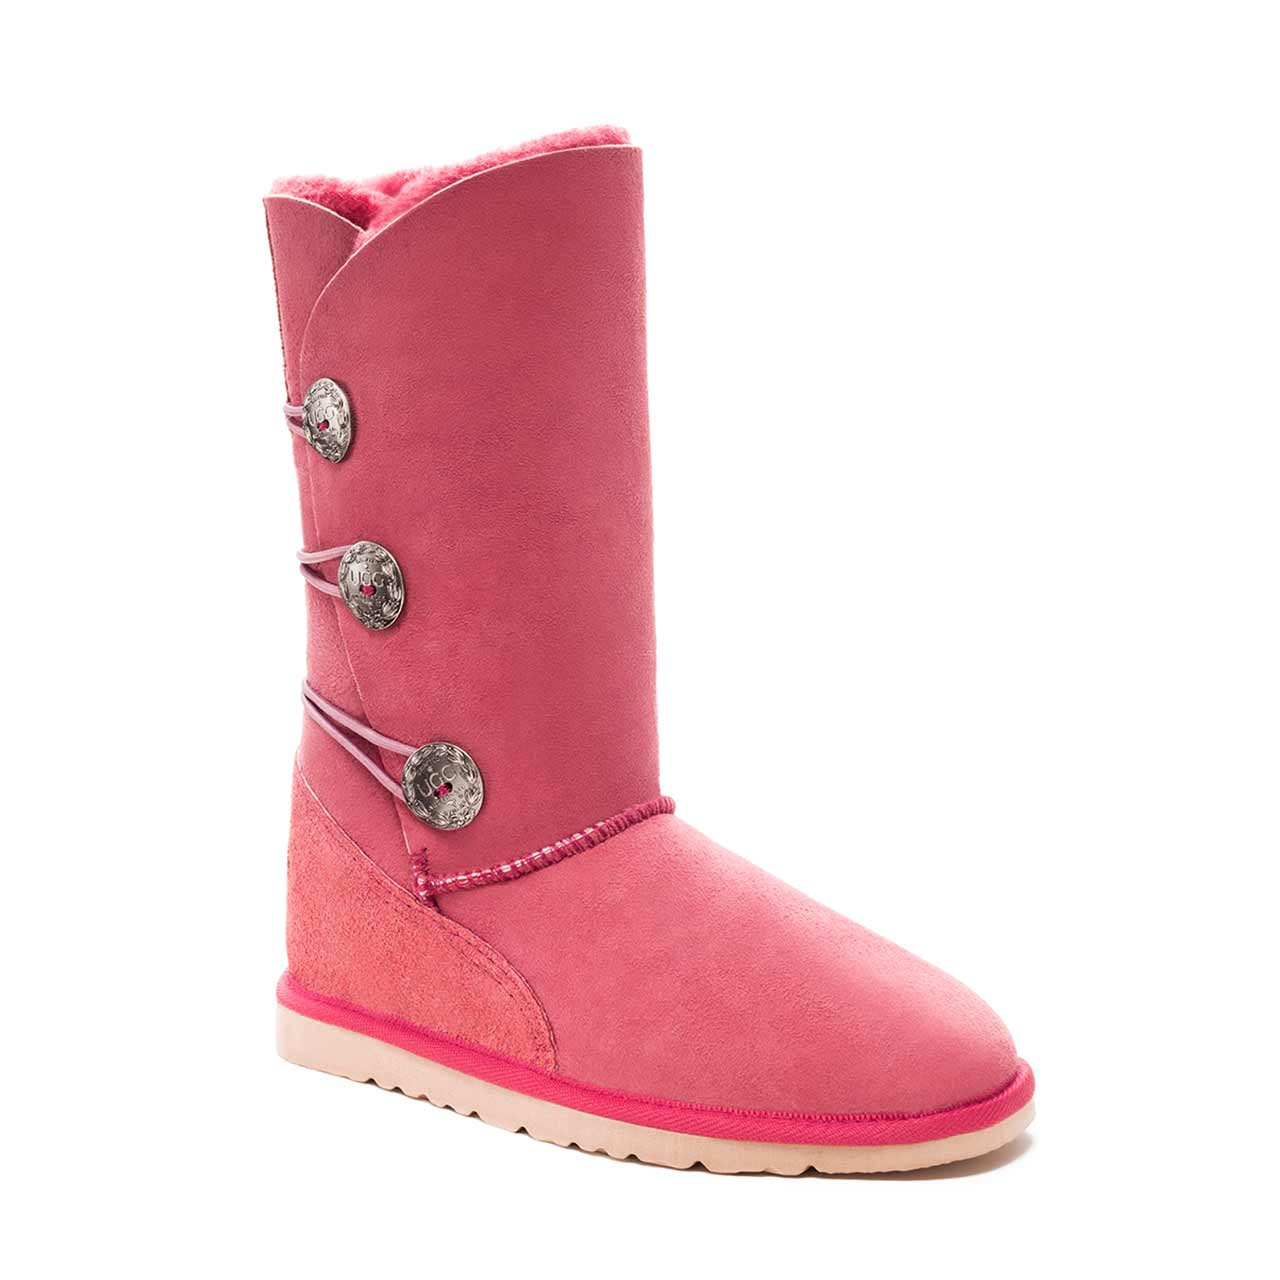 Brighton Long Boots - Womens - Discontinued Stock